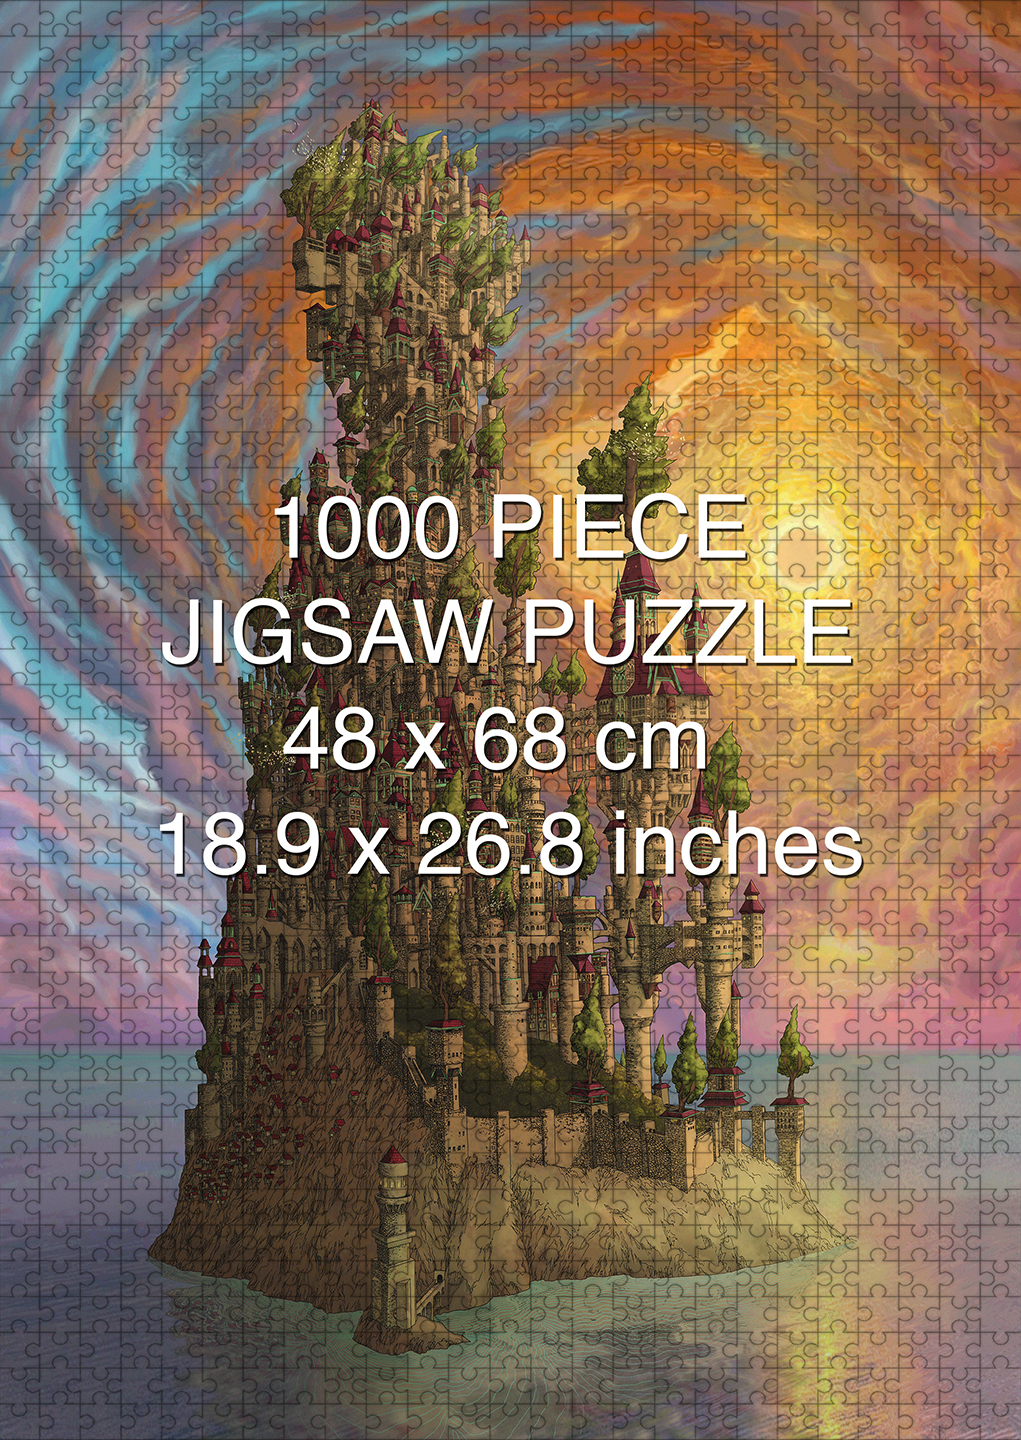 A Delicate Balance: The Kingdom 1000 piece puzzle by Aaron Wolf and Pandemic Puzzles